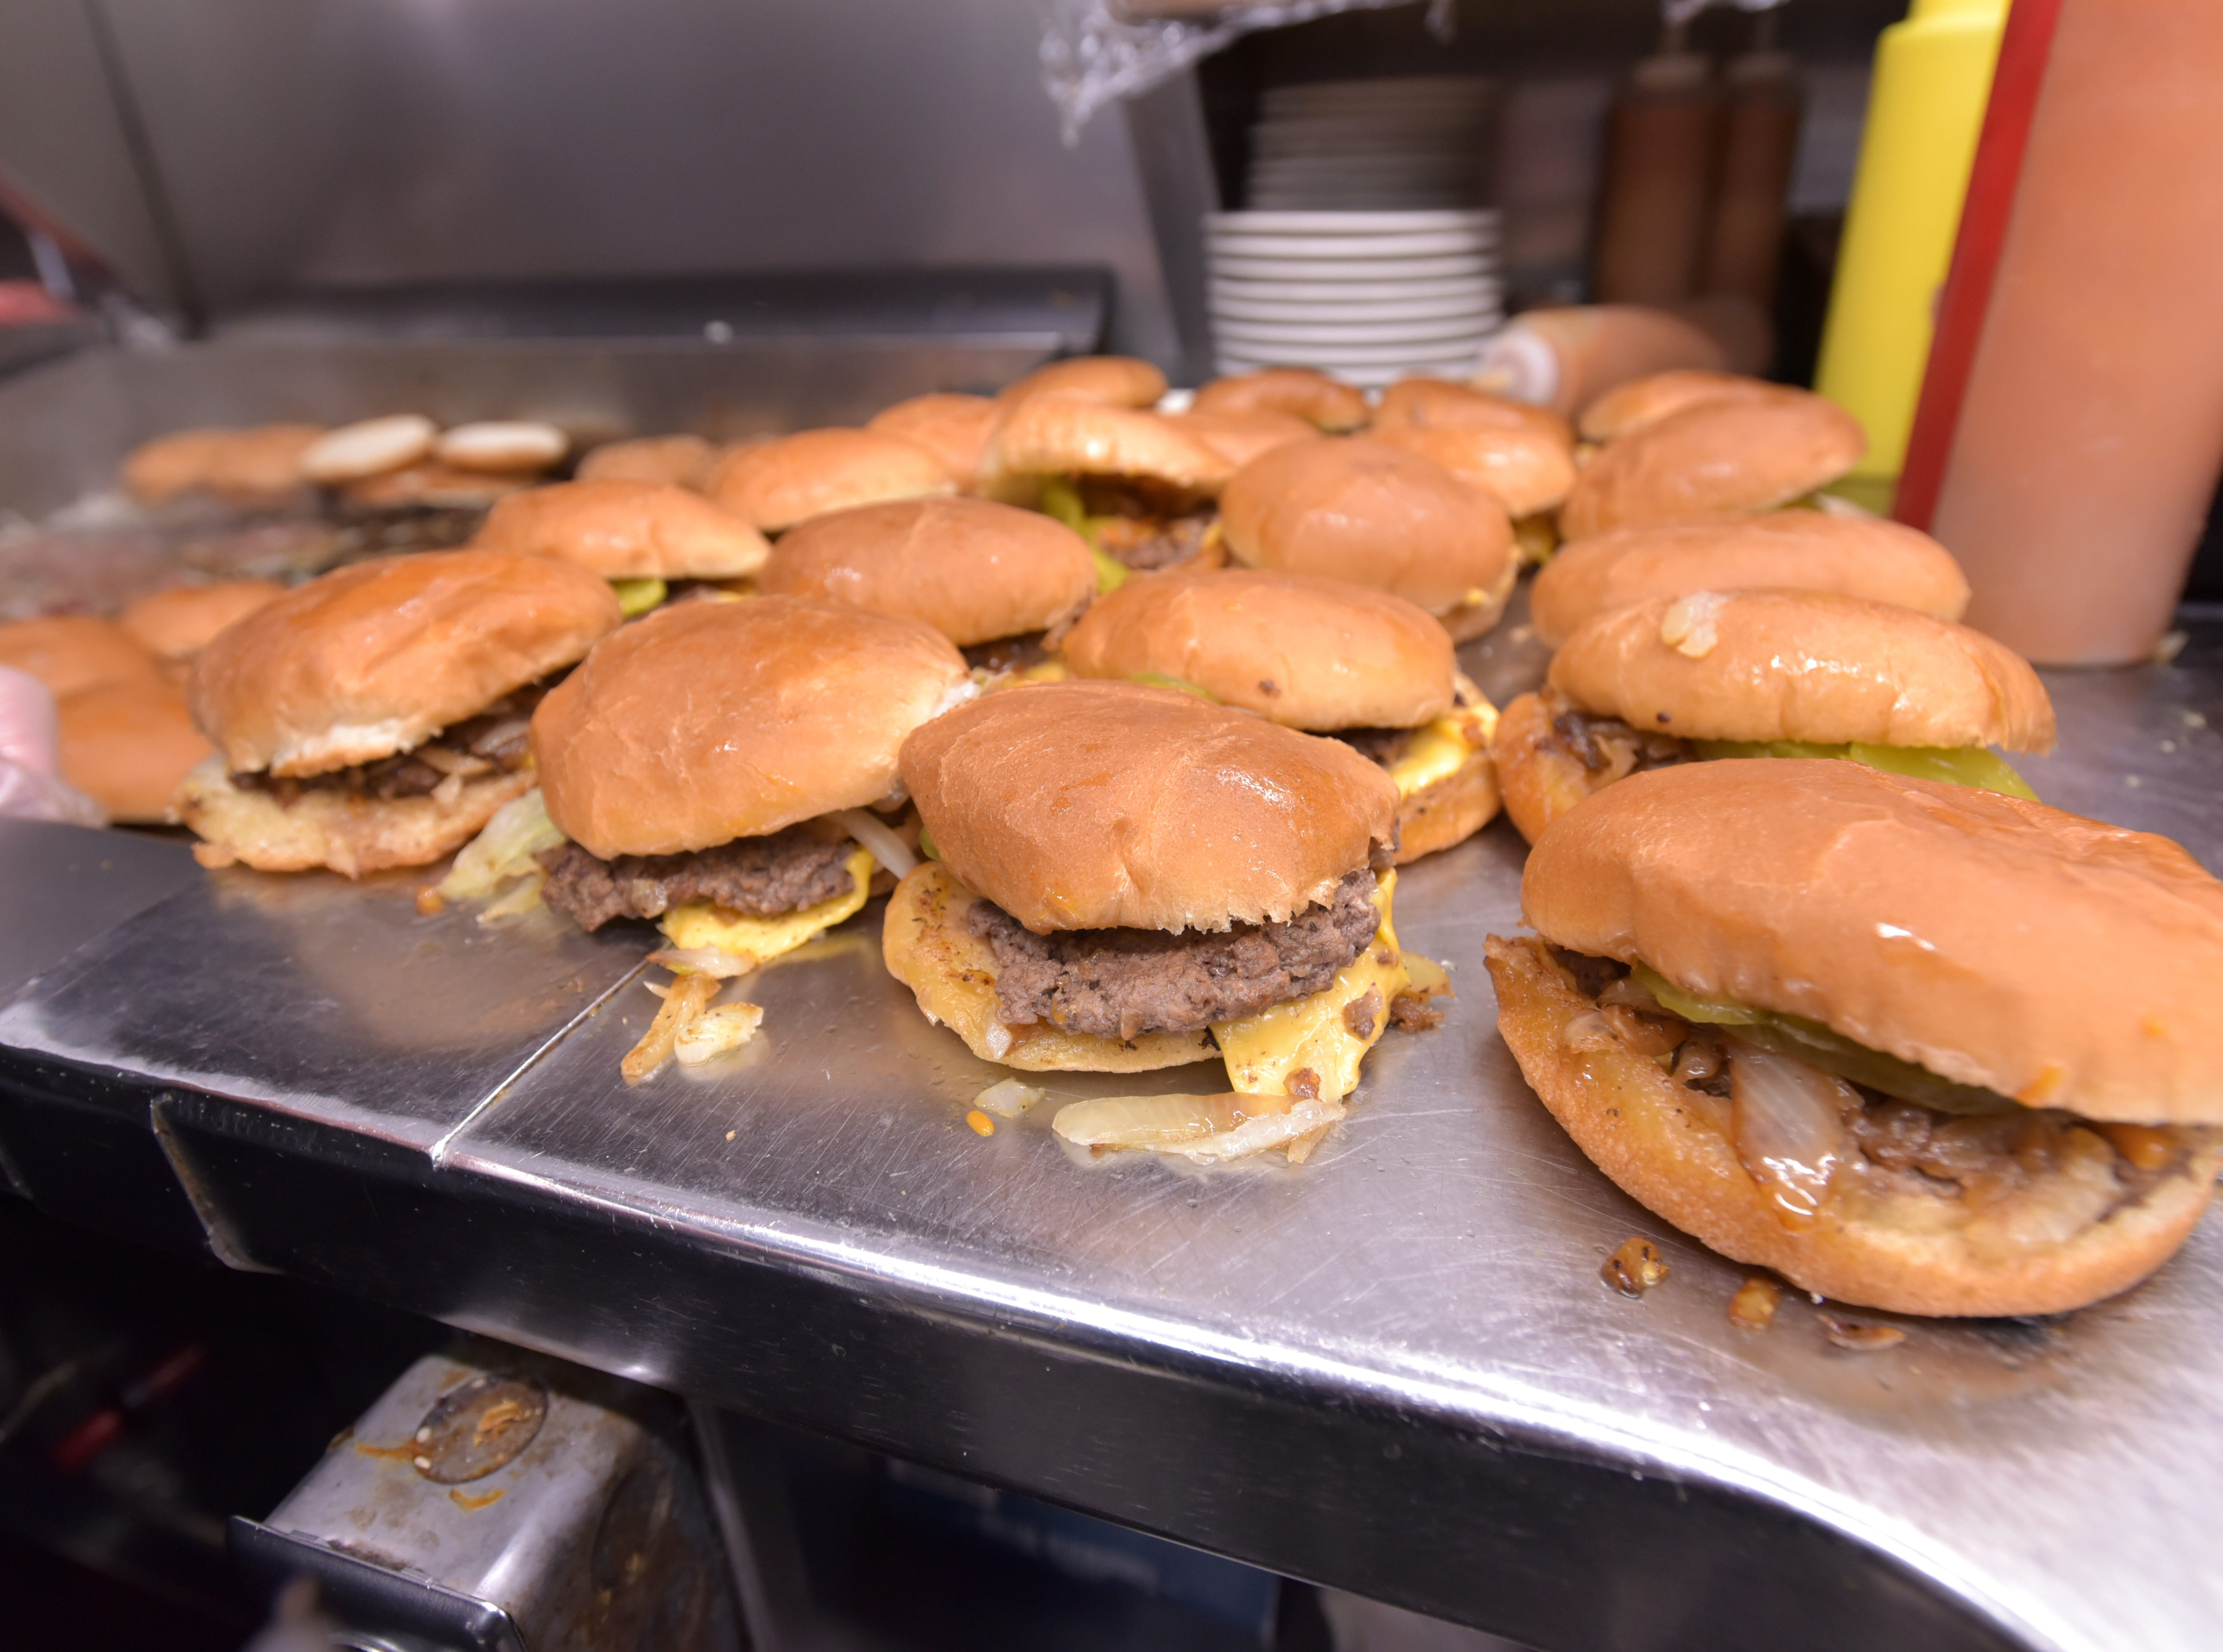 This is what brings them in: Bates Burgers with cheese and grilled onions.